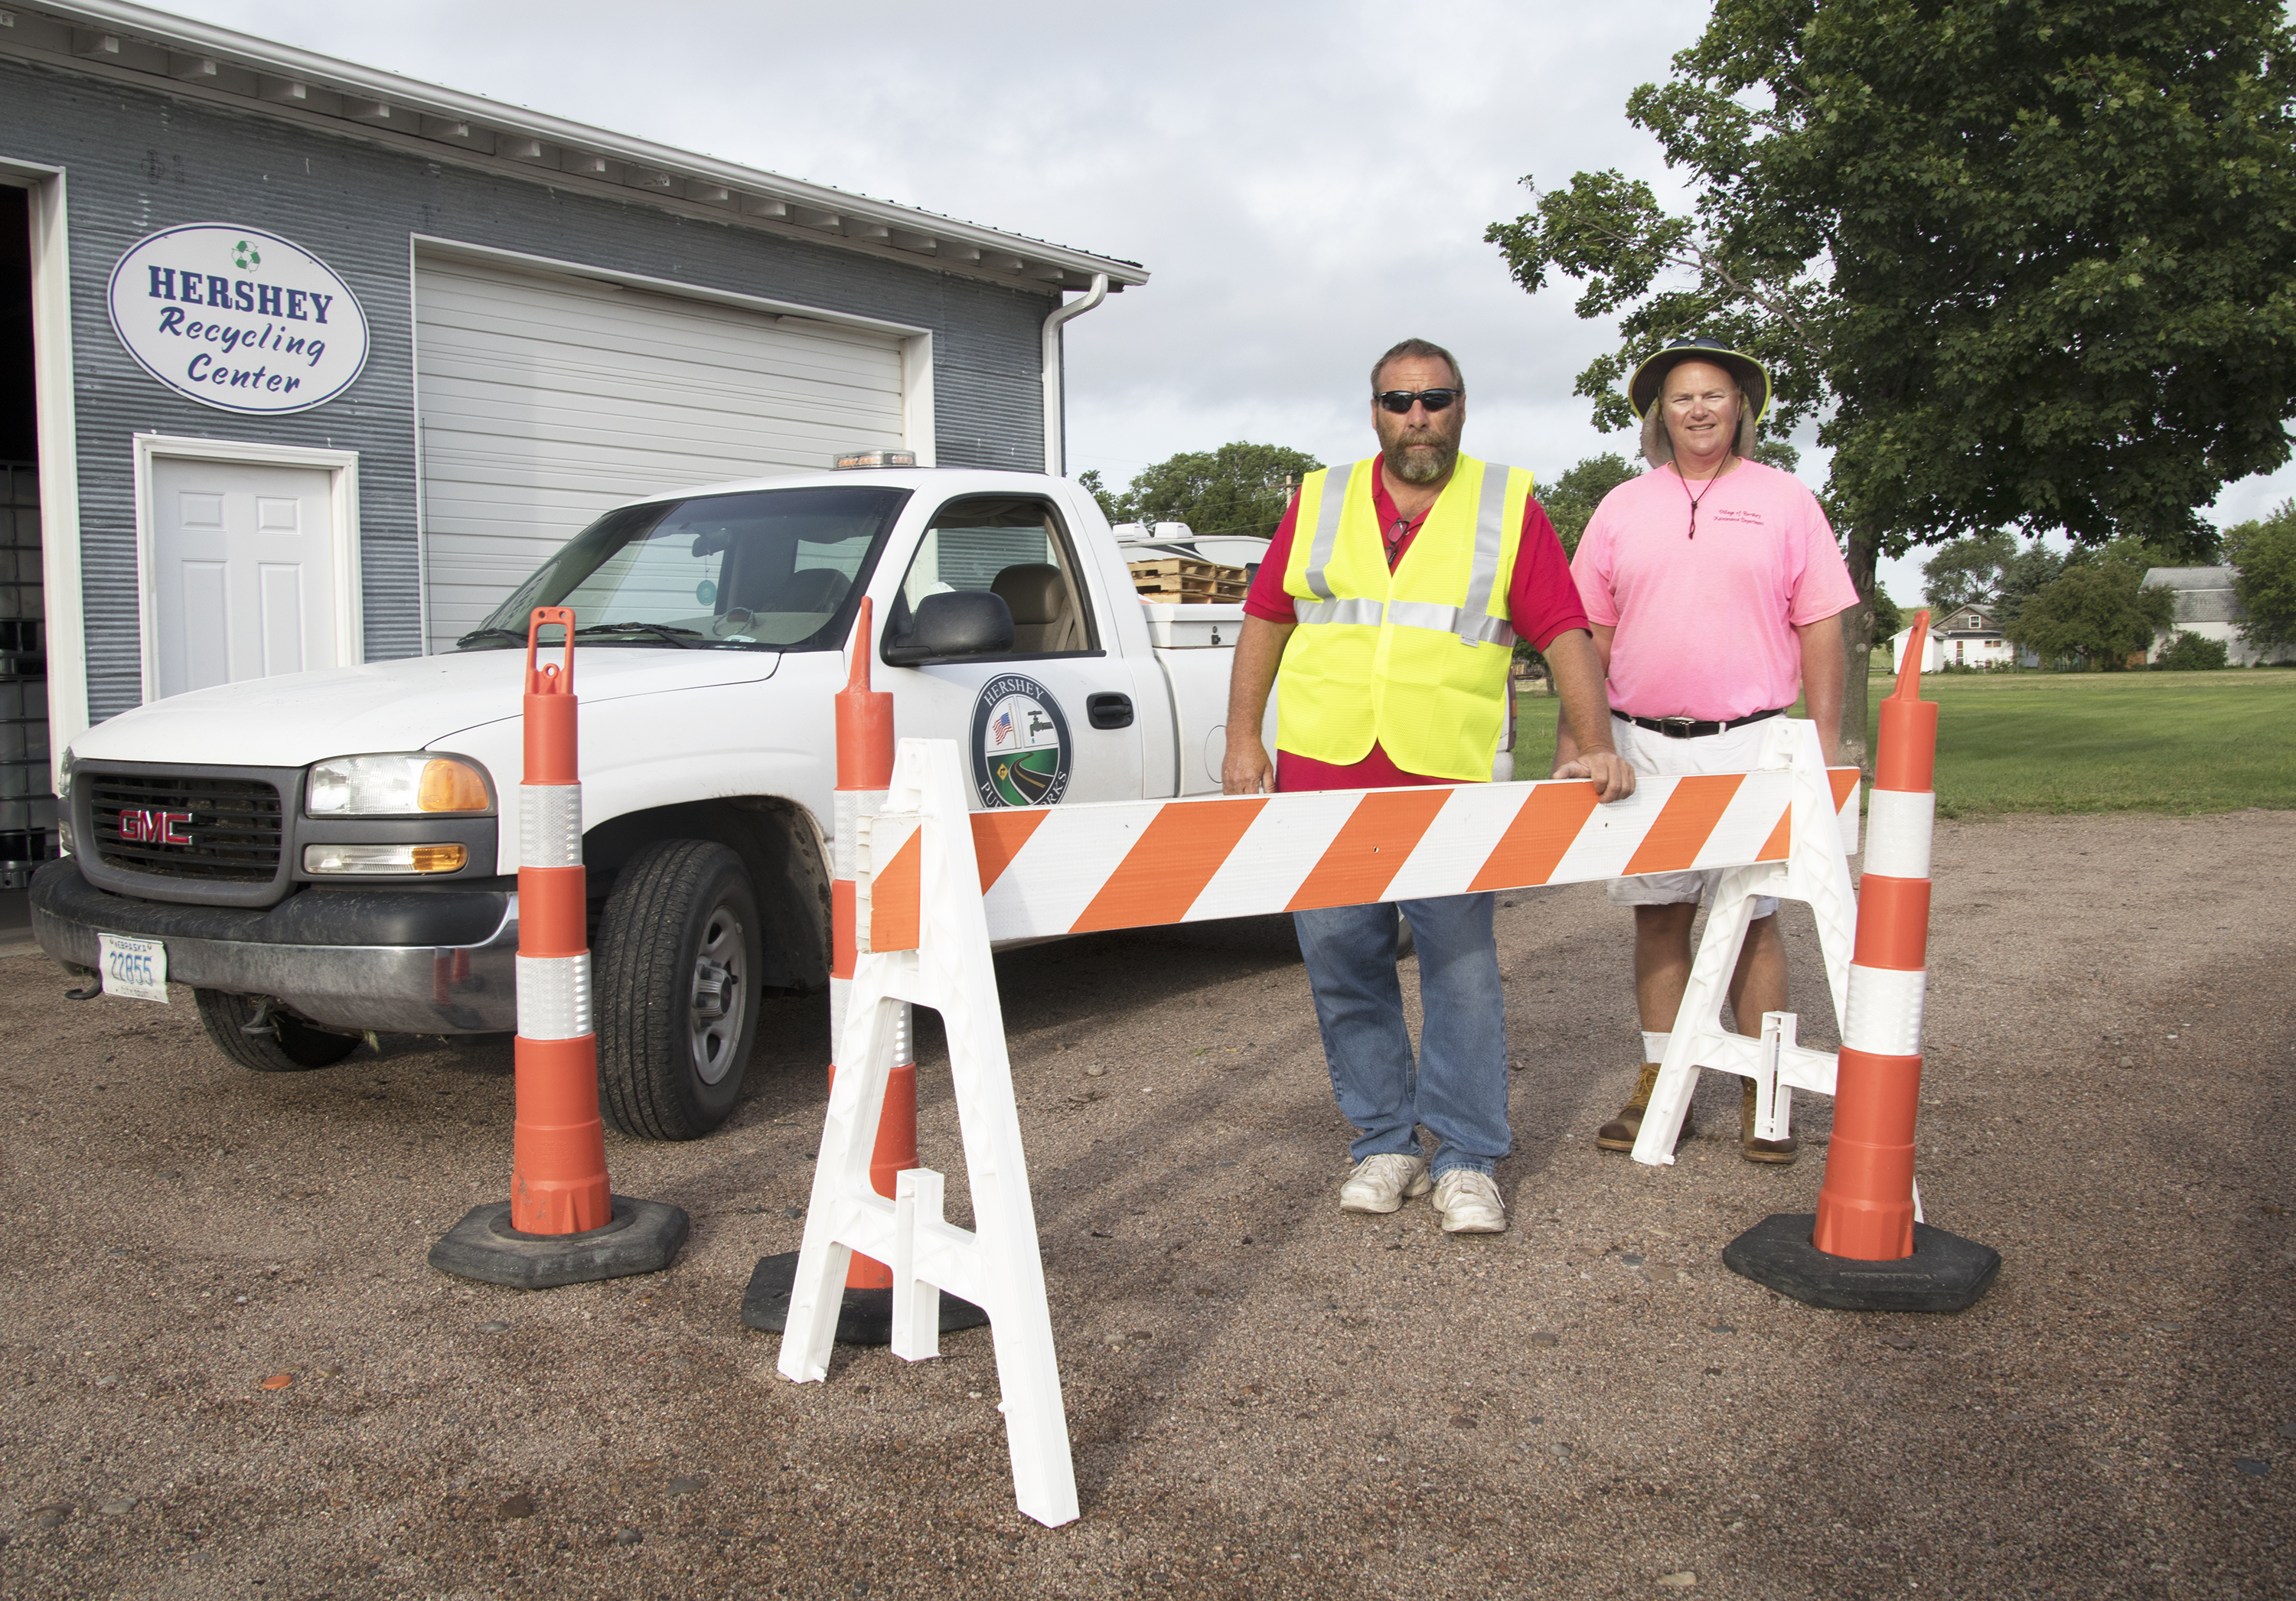 Village of Hershey bolsters safety equipment